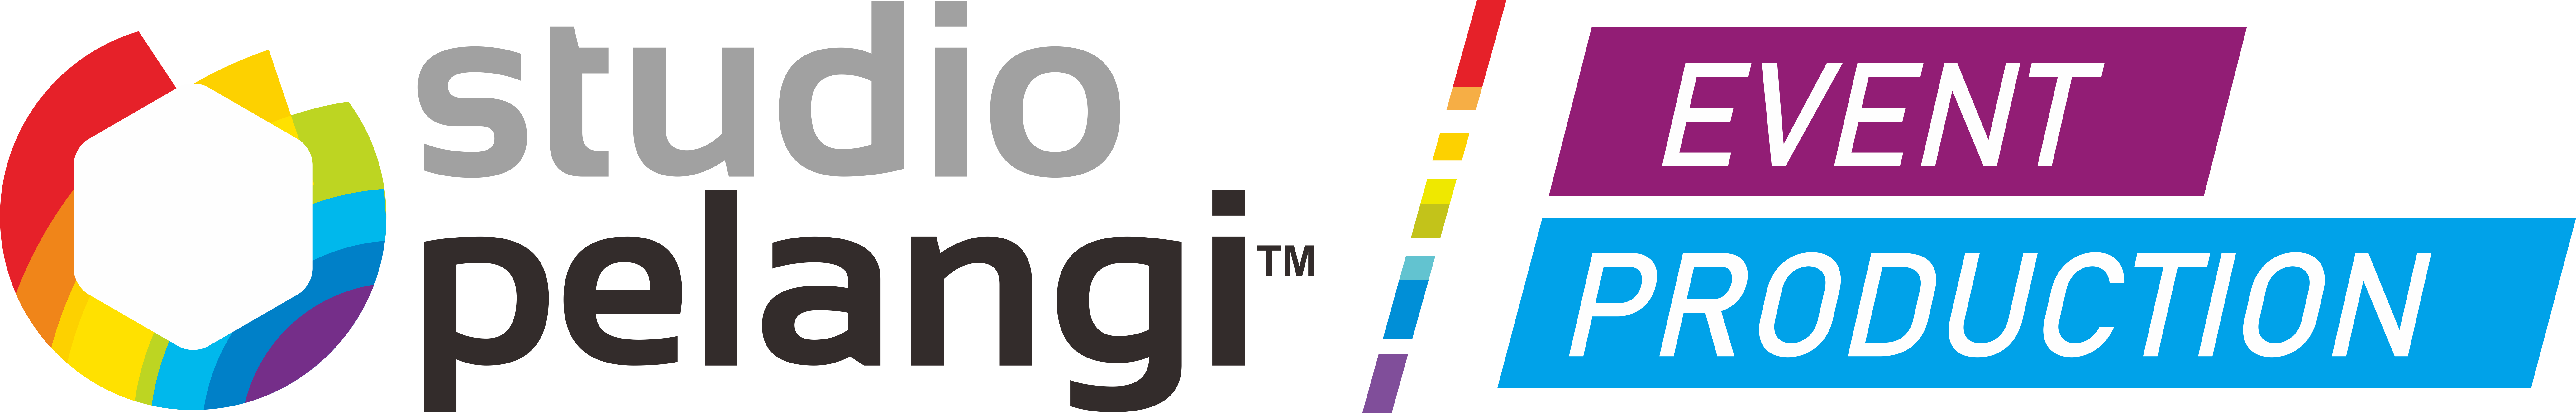 logo pelangi production